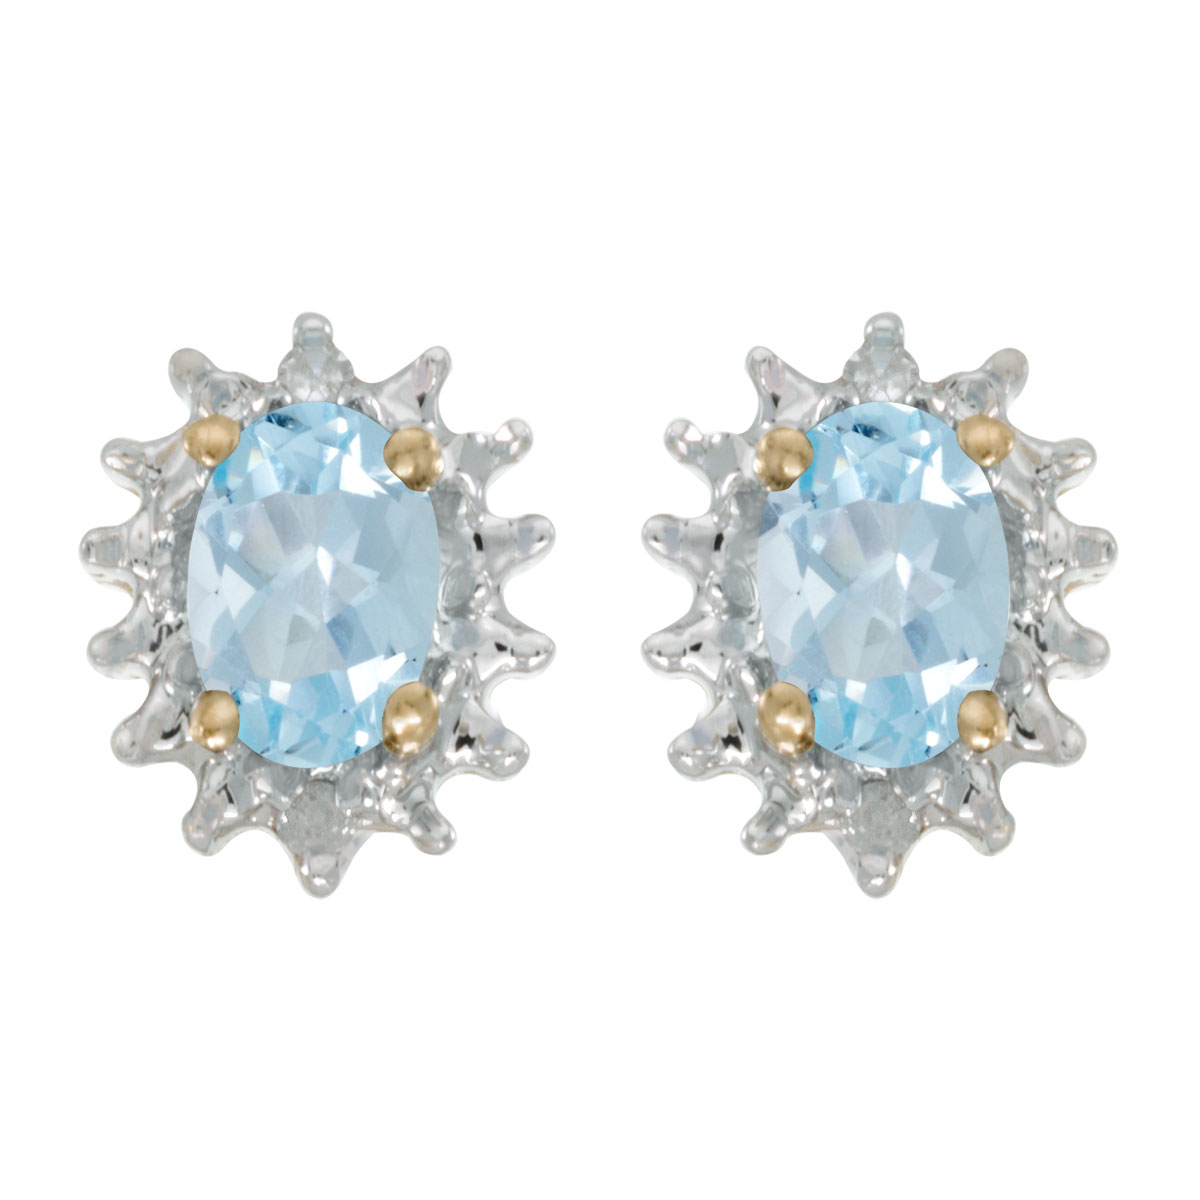 These 14k yellow gold oval aquamarine and diamond earrings feature 6x4 mm genuine natural aquamar...